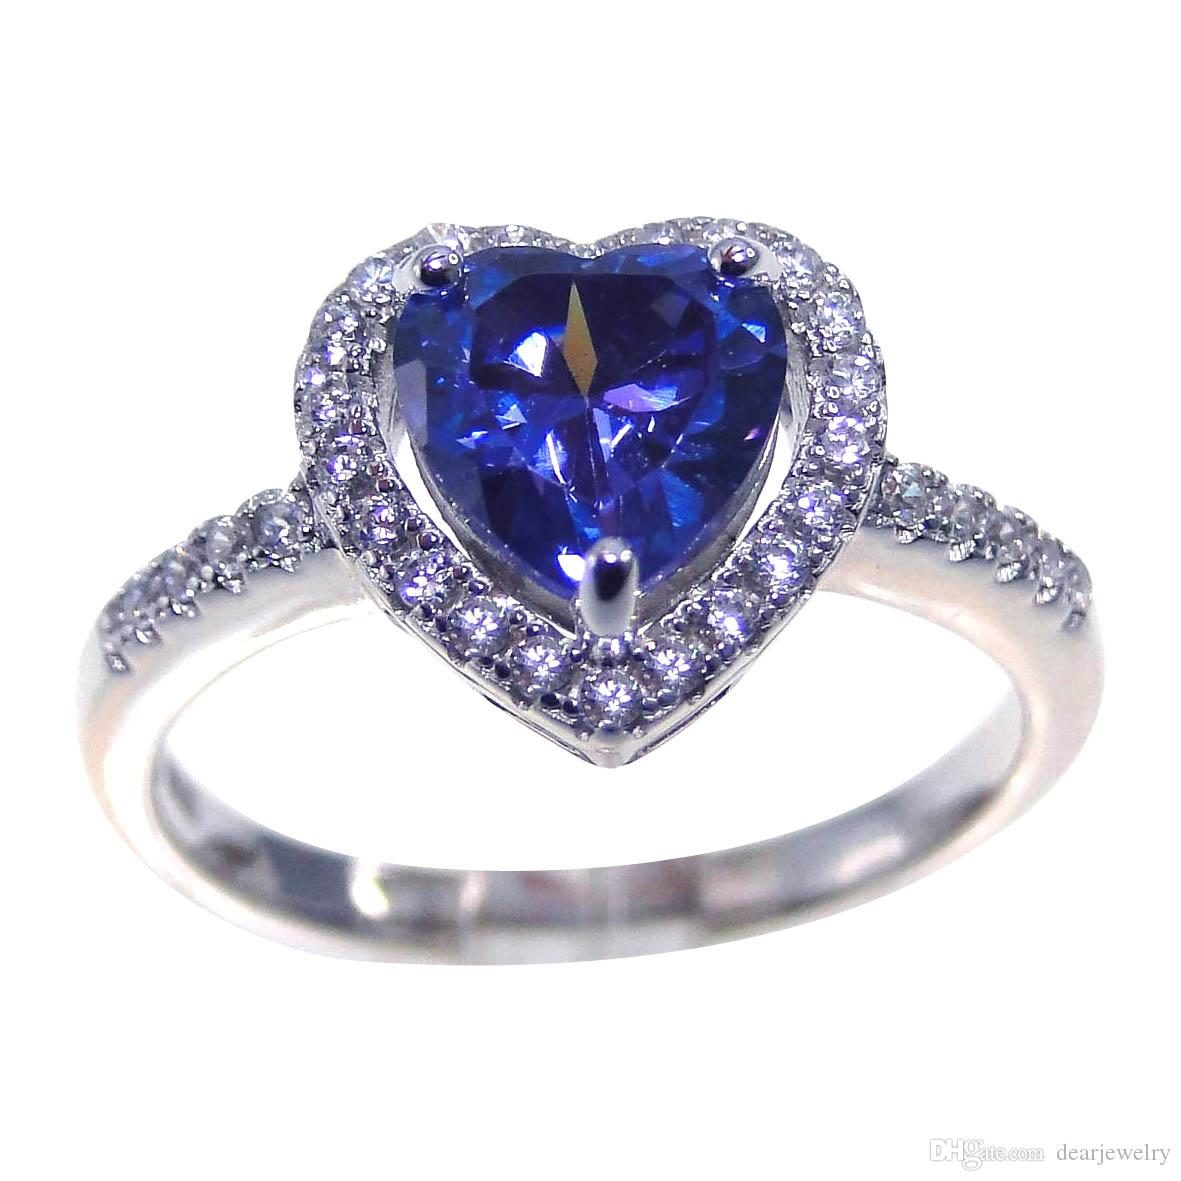 57263850edf29 New Style Fashion jewelry 925 silver tanzanite mystery Zircon Rhodium  Plated Ring Wedding Ring Jeweilry DR0241258R-4.52g size8 Free Shipping